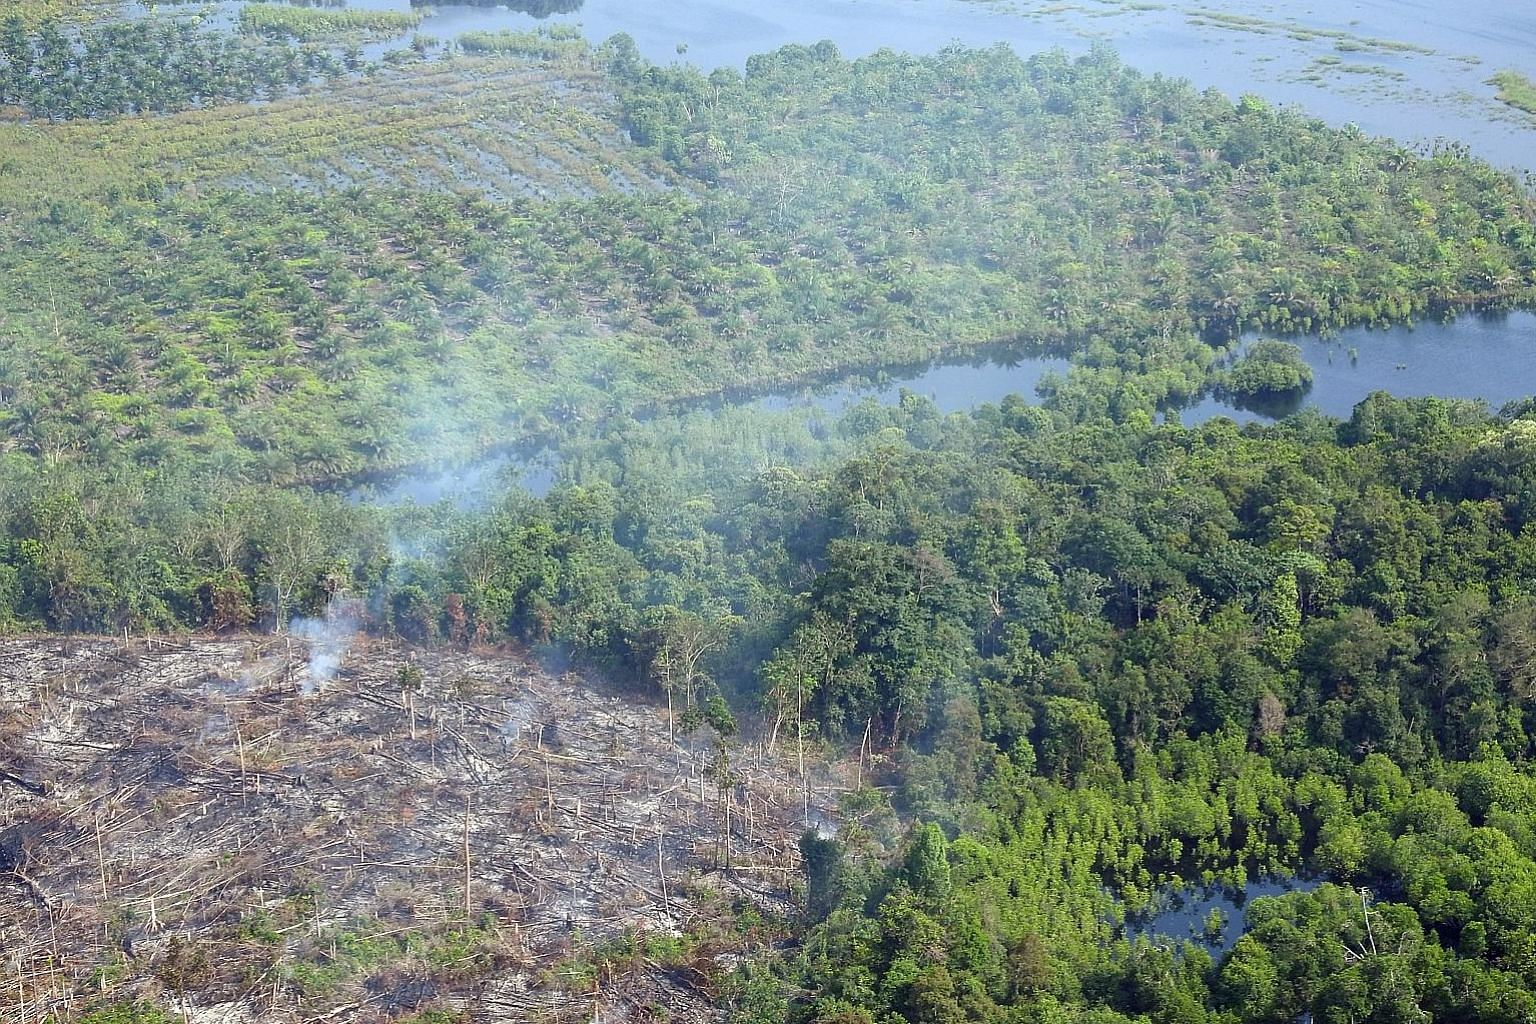 Smoke rising from clearings in Indonesia's Giam Siak Kecil-Bukit Batu Biosphere Reserve in February this year. The protected forest was being cleared illegally to make way for plantations.